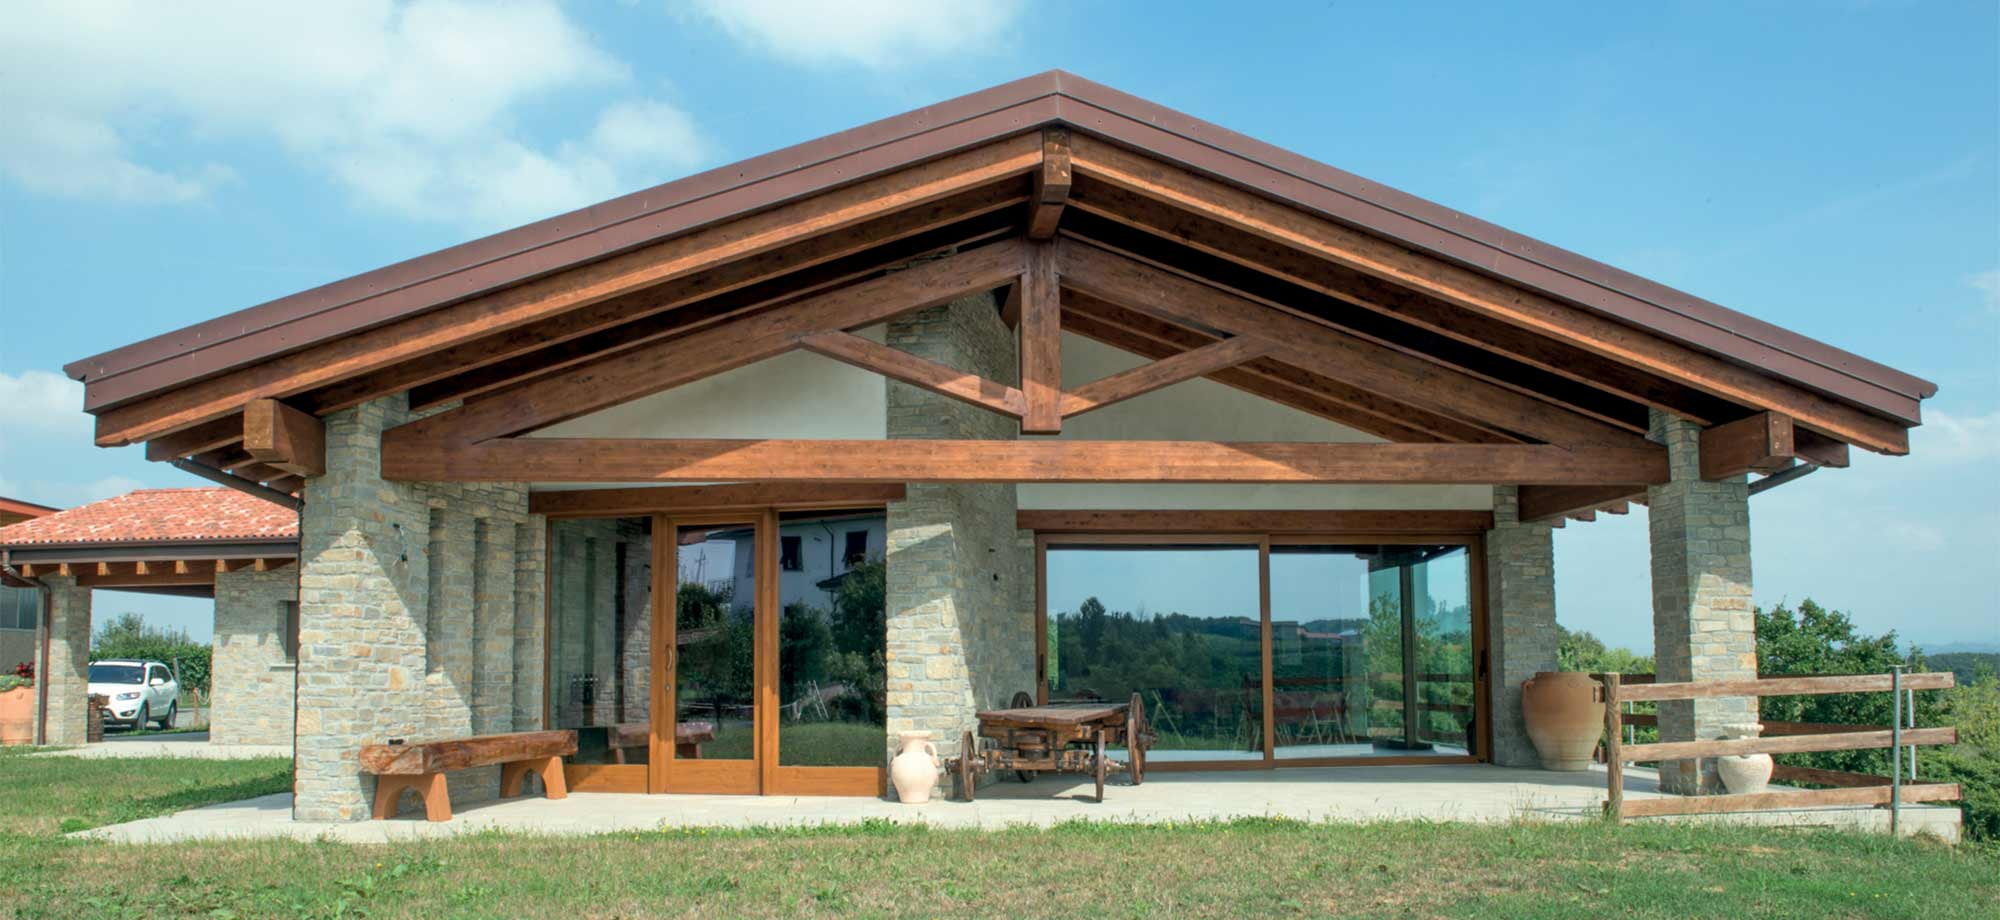 Wood: noble by nature, structural by innovation